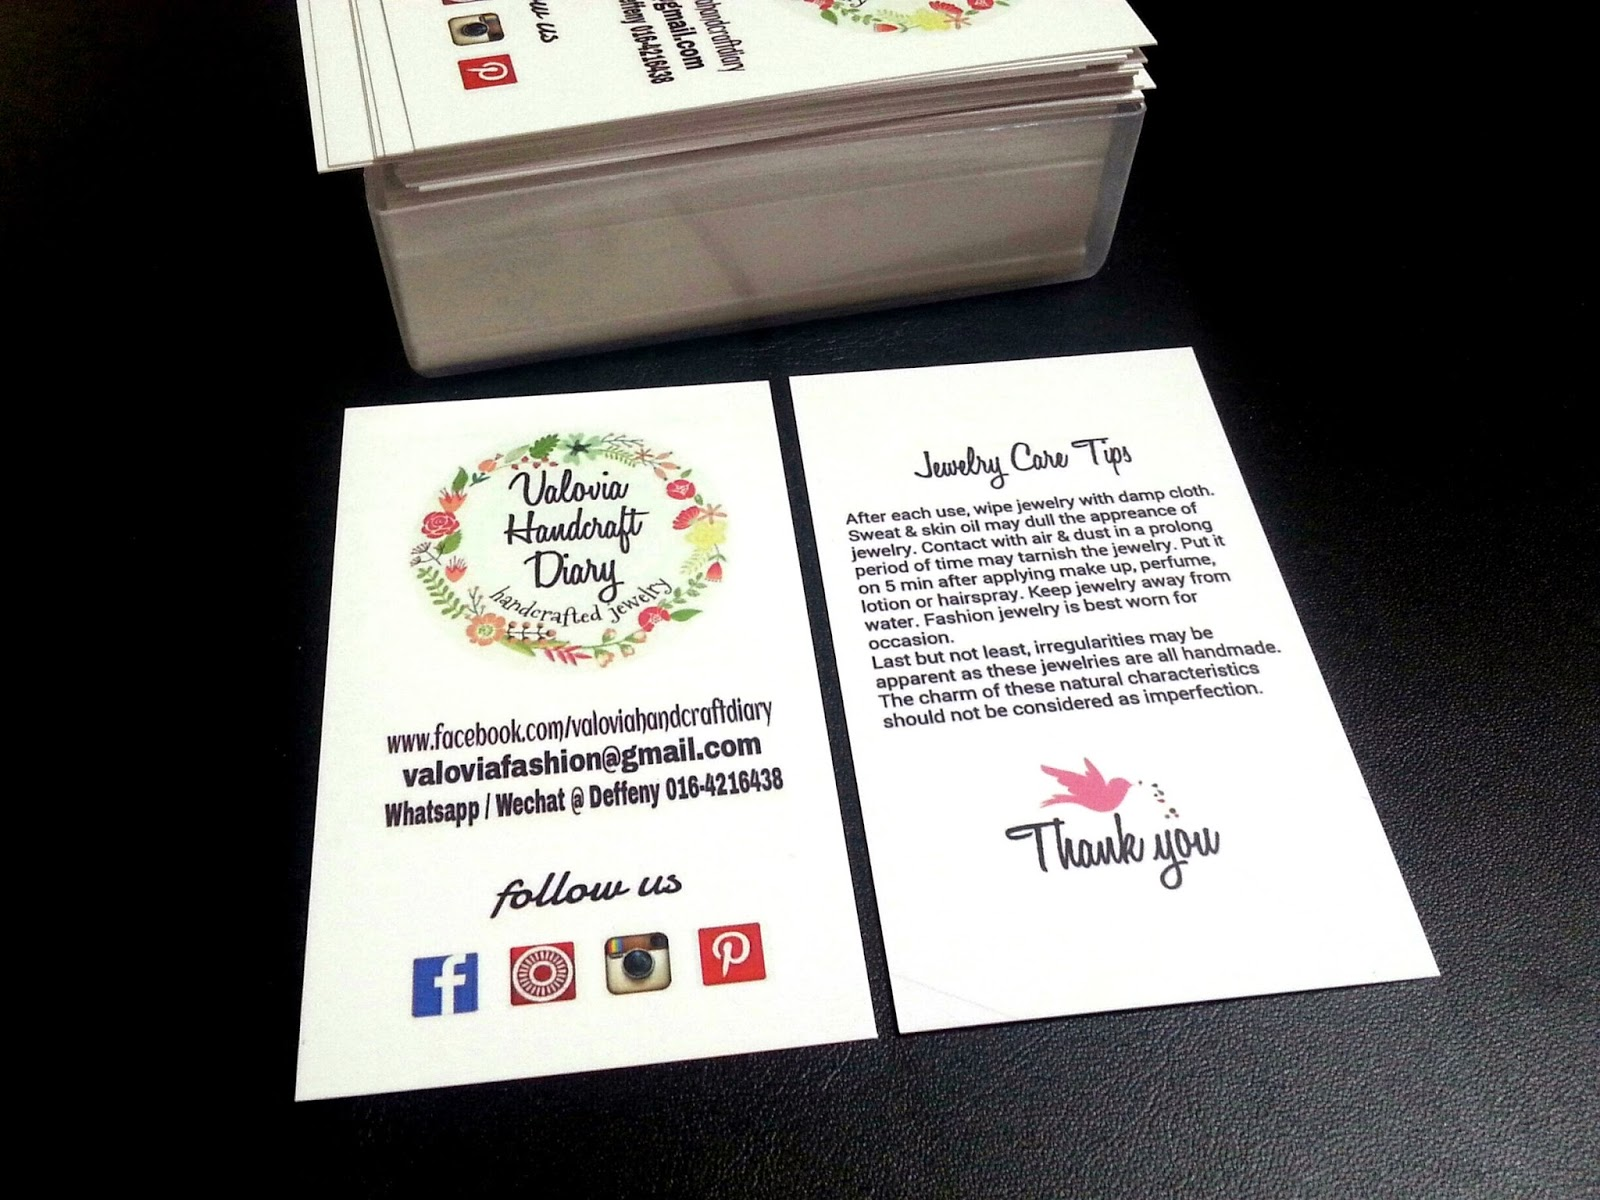 Business Name Card Printing Kuala Lumpur, Cetak, biz card, cute, colourful, art card matt lamination, gloss, murah